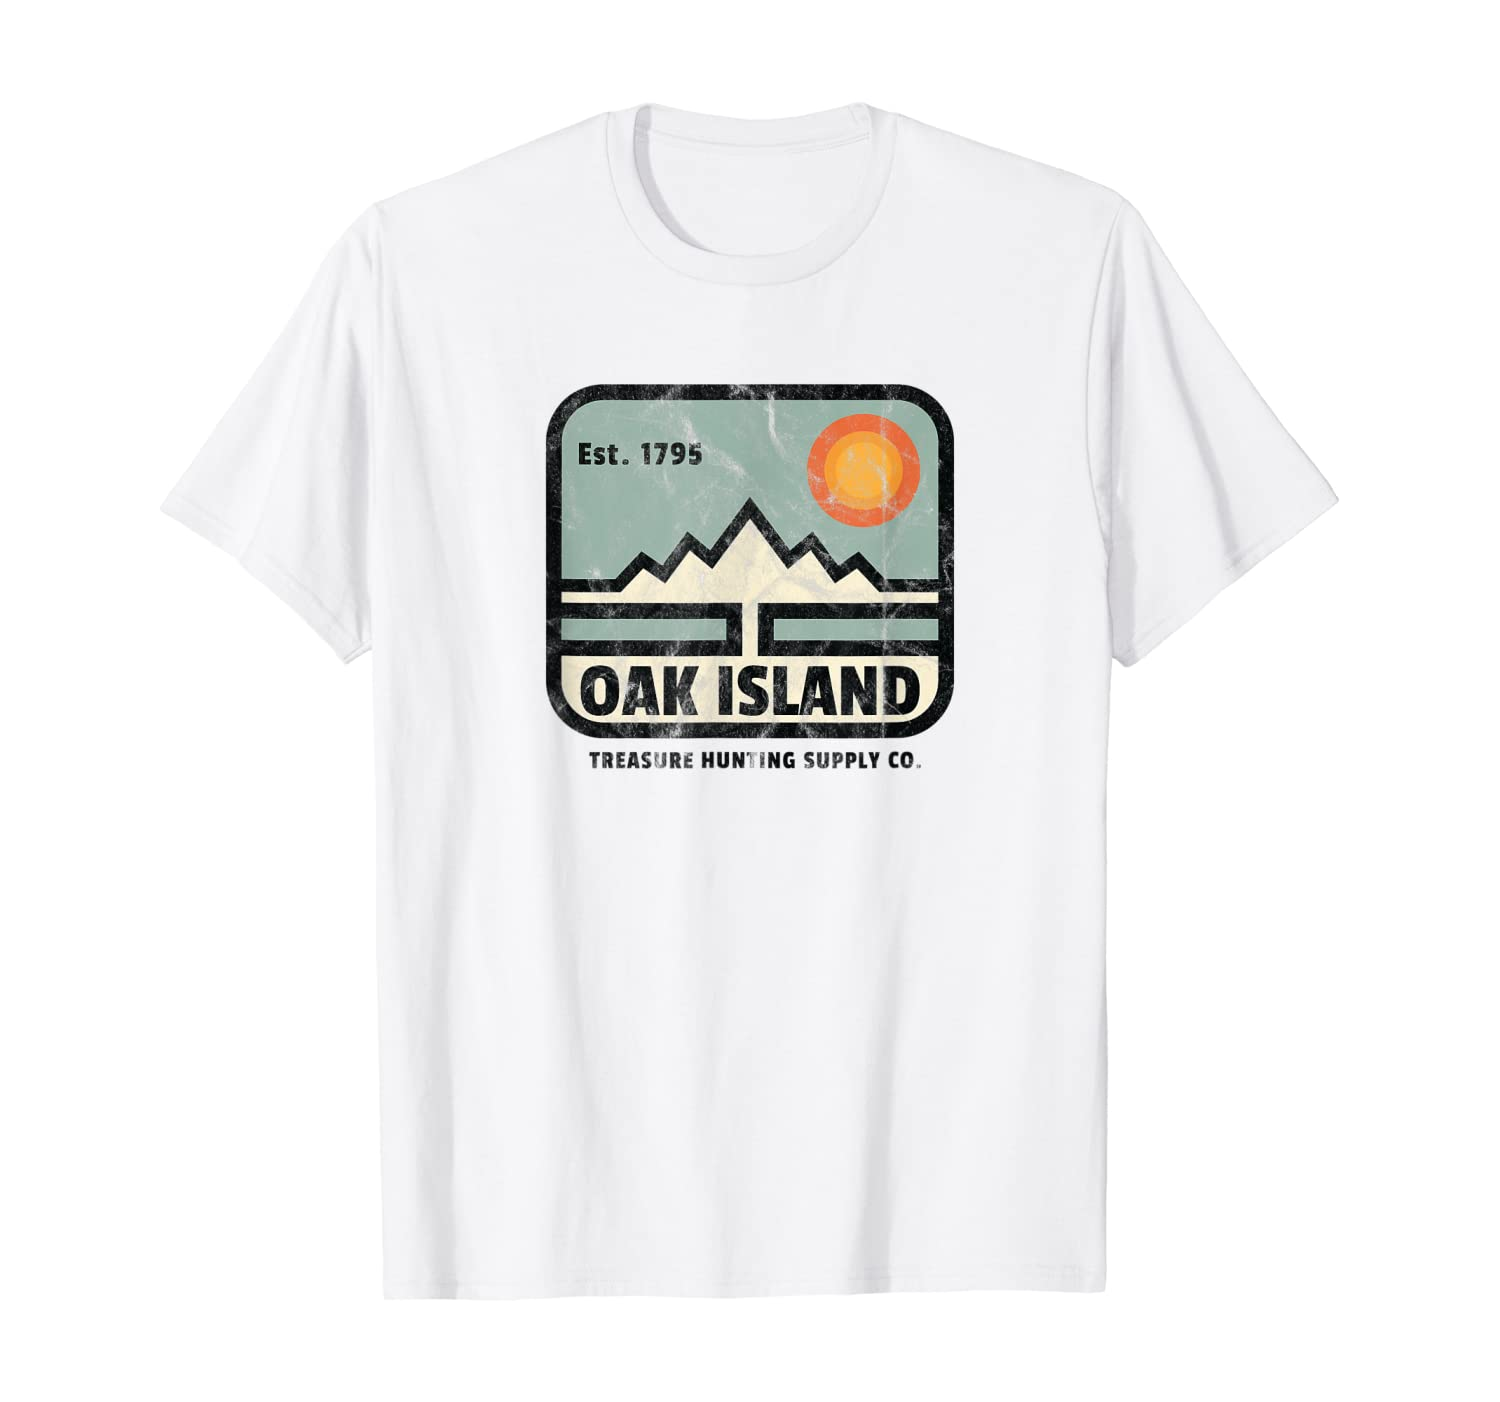 Oak Island Treasure Hunting Supply Vintage 1795 Map Mystery T-Shirt